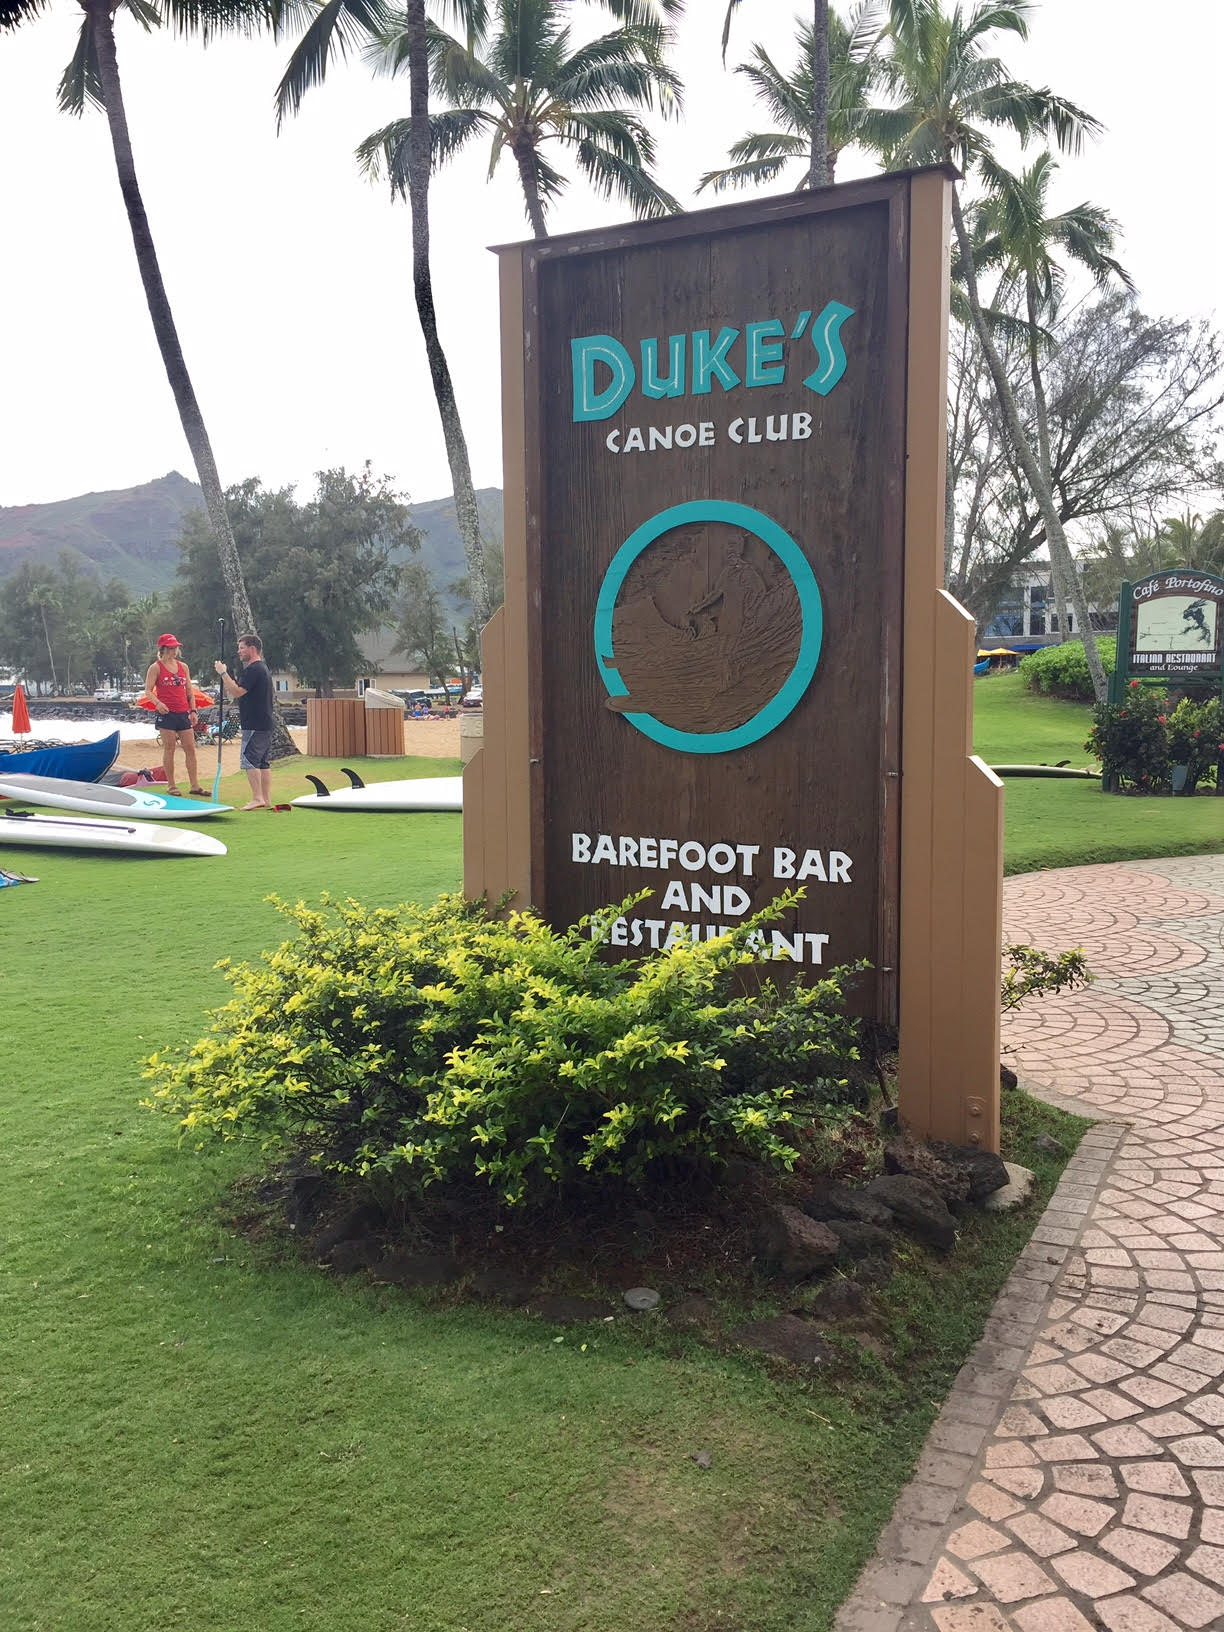 The famous Duke's restaurant in Kauai